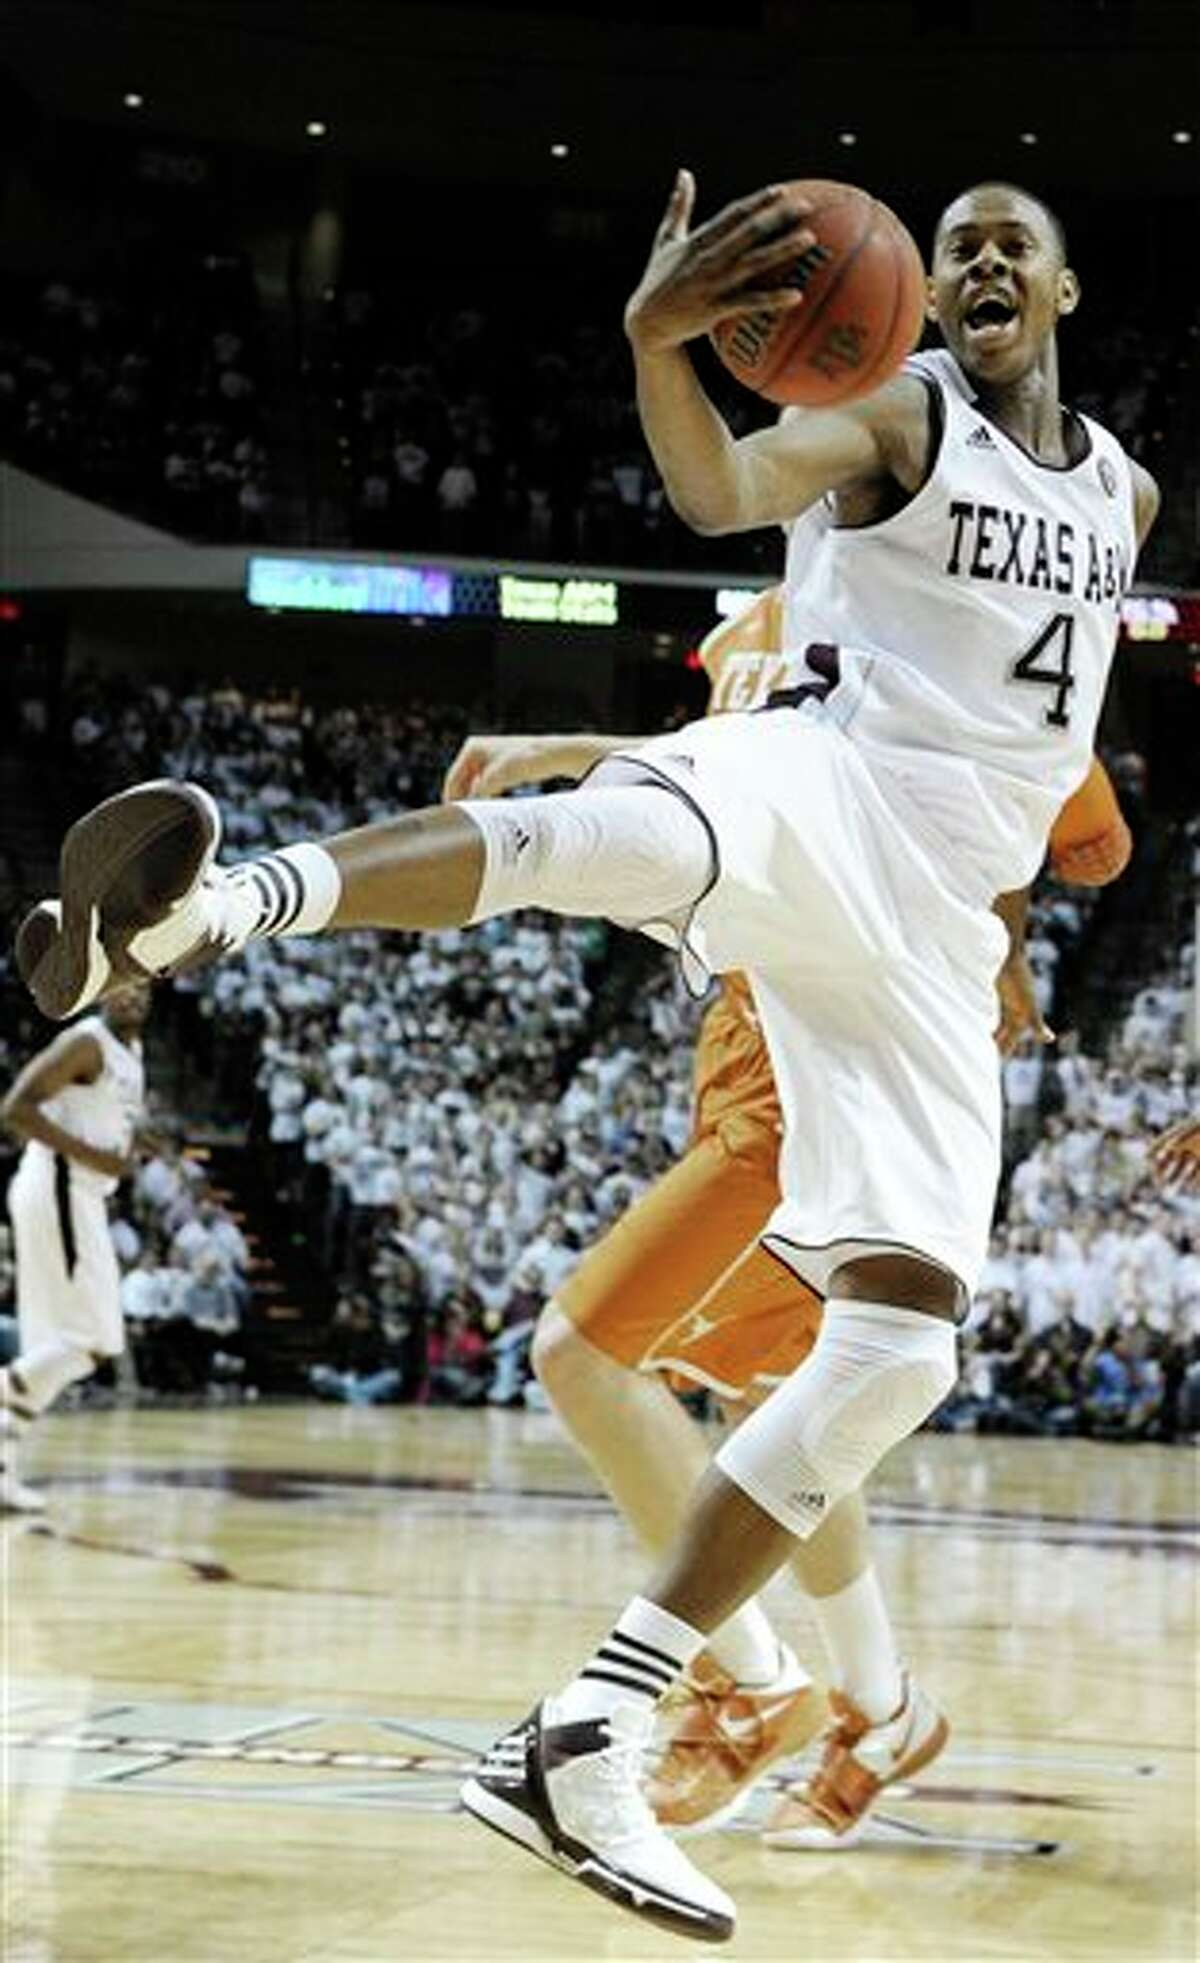 Texas A&M's Keith Davis (4) grabs a rebound during the first half of an NCAA college basketball game against Texas on Monday, Feb. 6, 2012, in College Station, Texas. (AP Photo/Pat Sullivan)